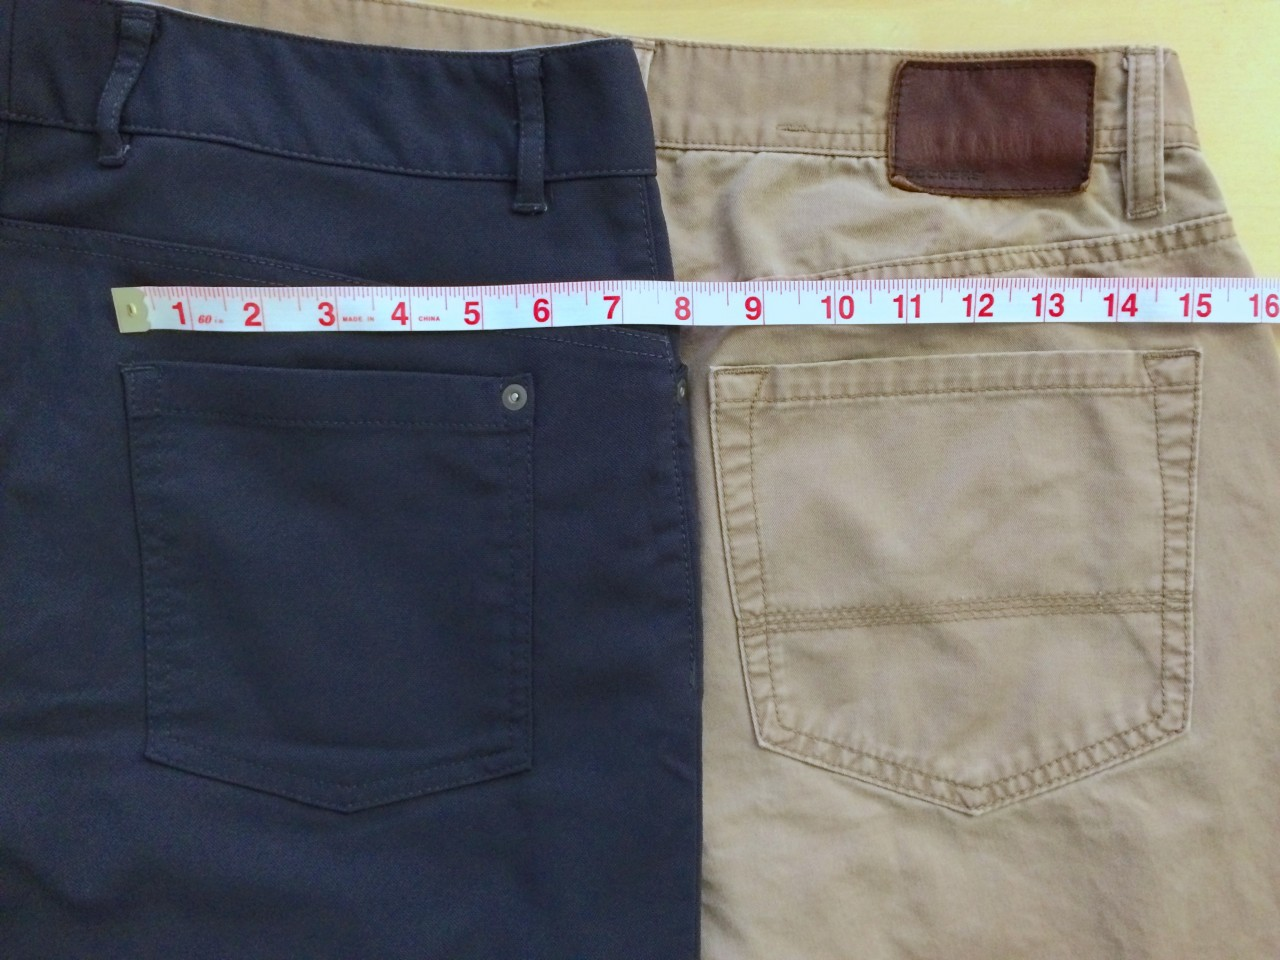 Slim Dungarees back pocket size comparison